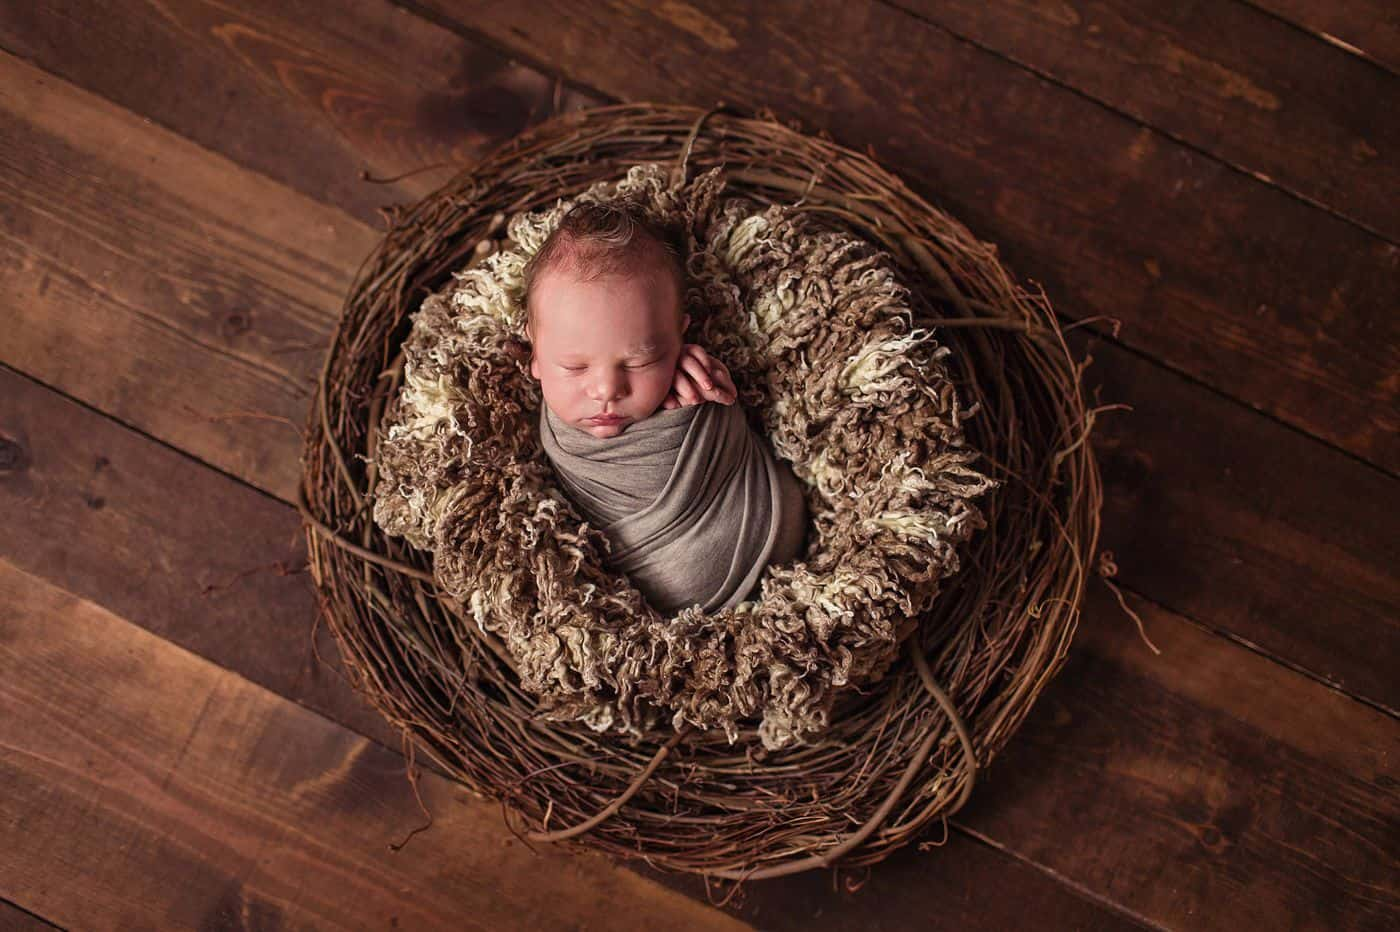 Newborn Photo Props: How To Make Photos That Are Classy & Cute